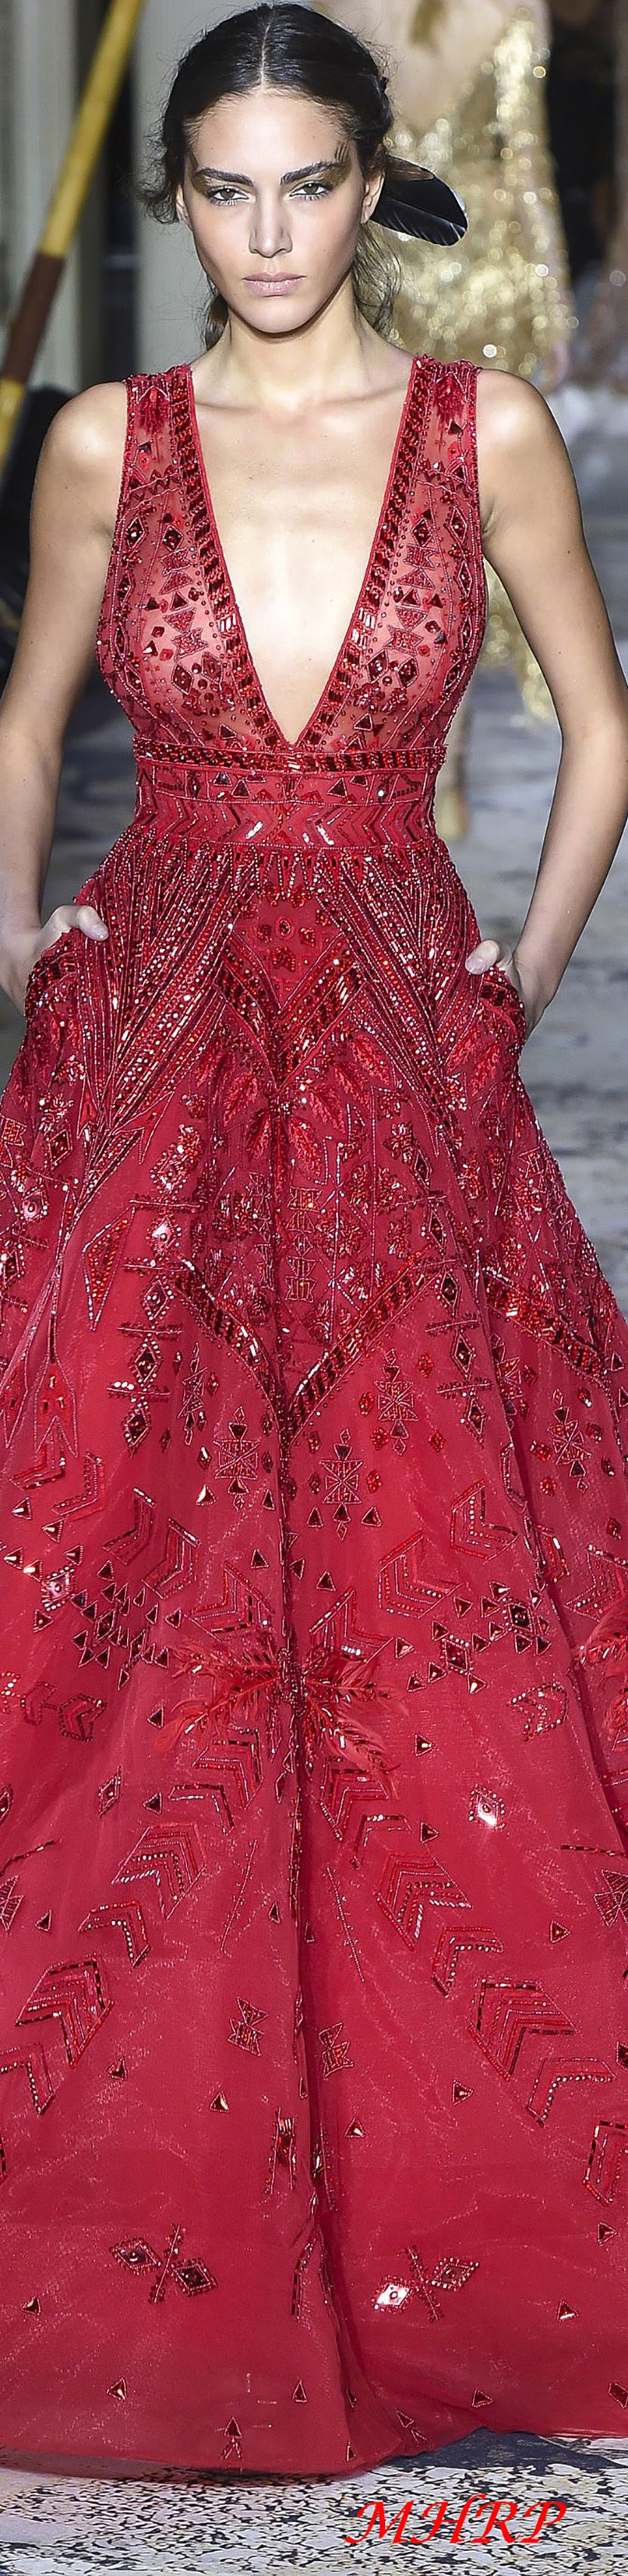 Zuhair murad spring coutureimage pinned from vogue prom